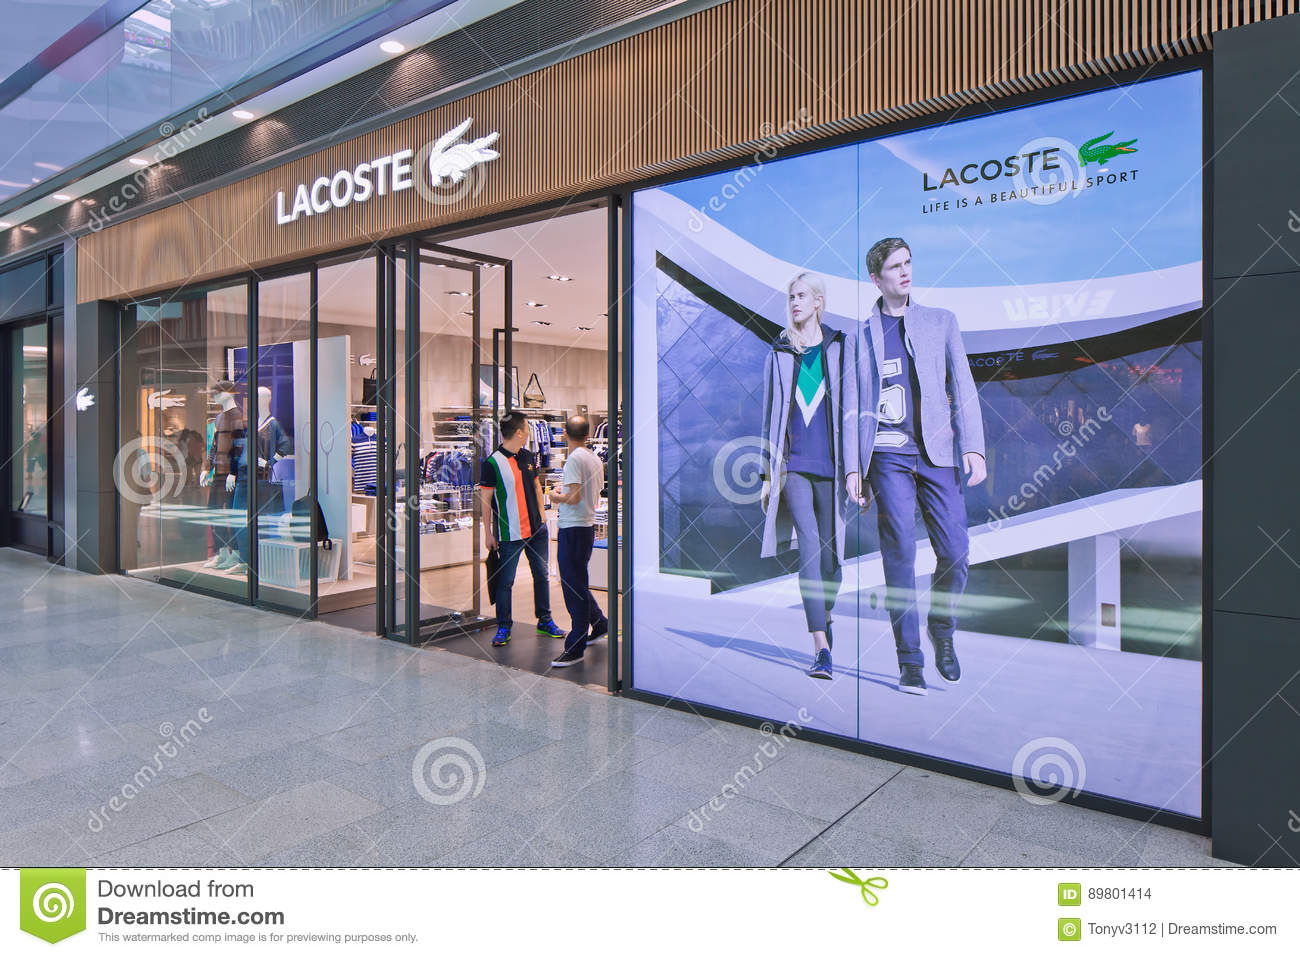 7204982c8f9 Lacoste outlet. Lacoste is a French clothing company founded in 1933